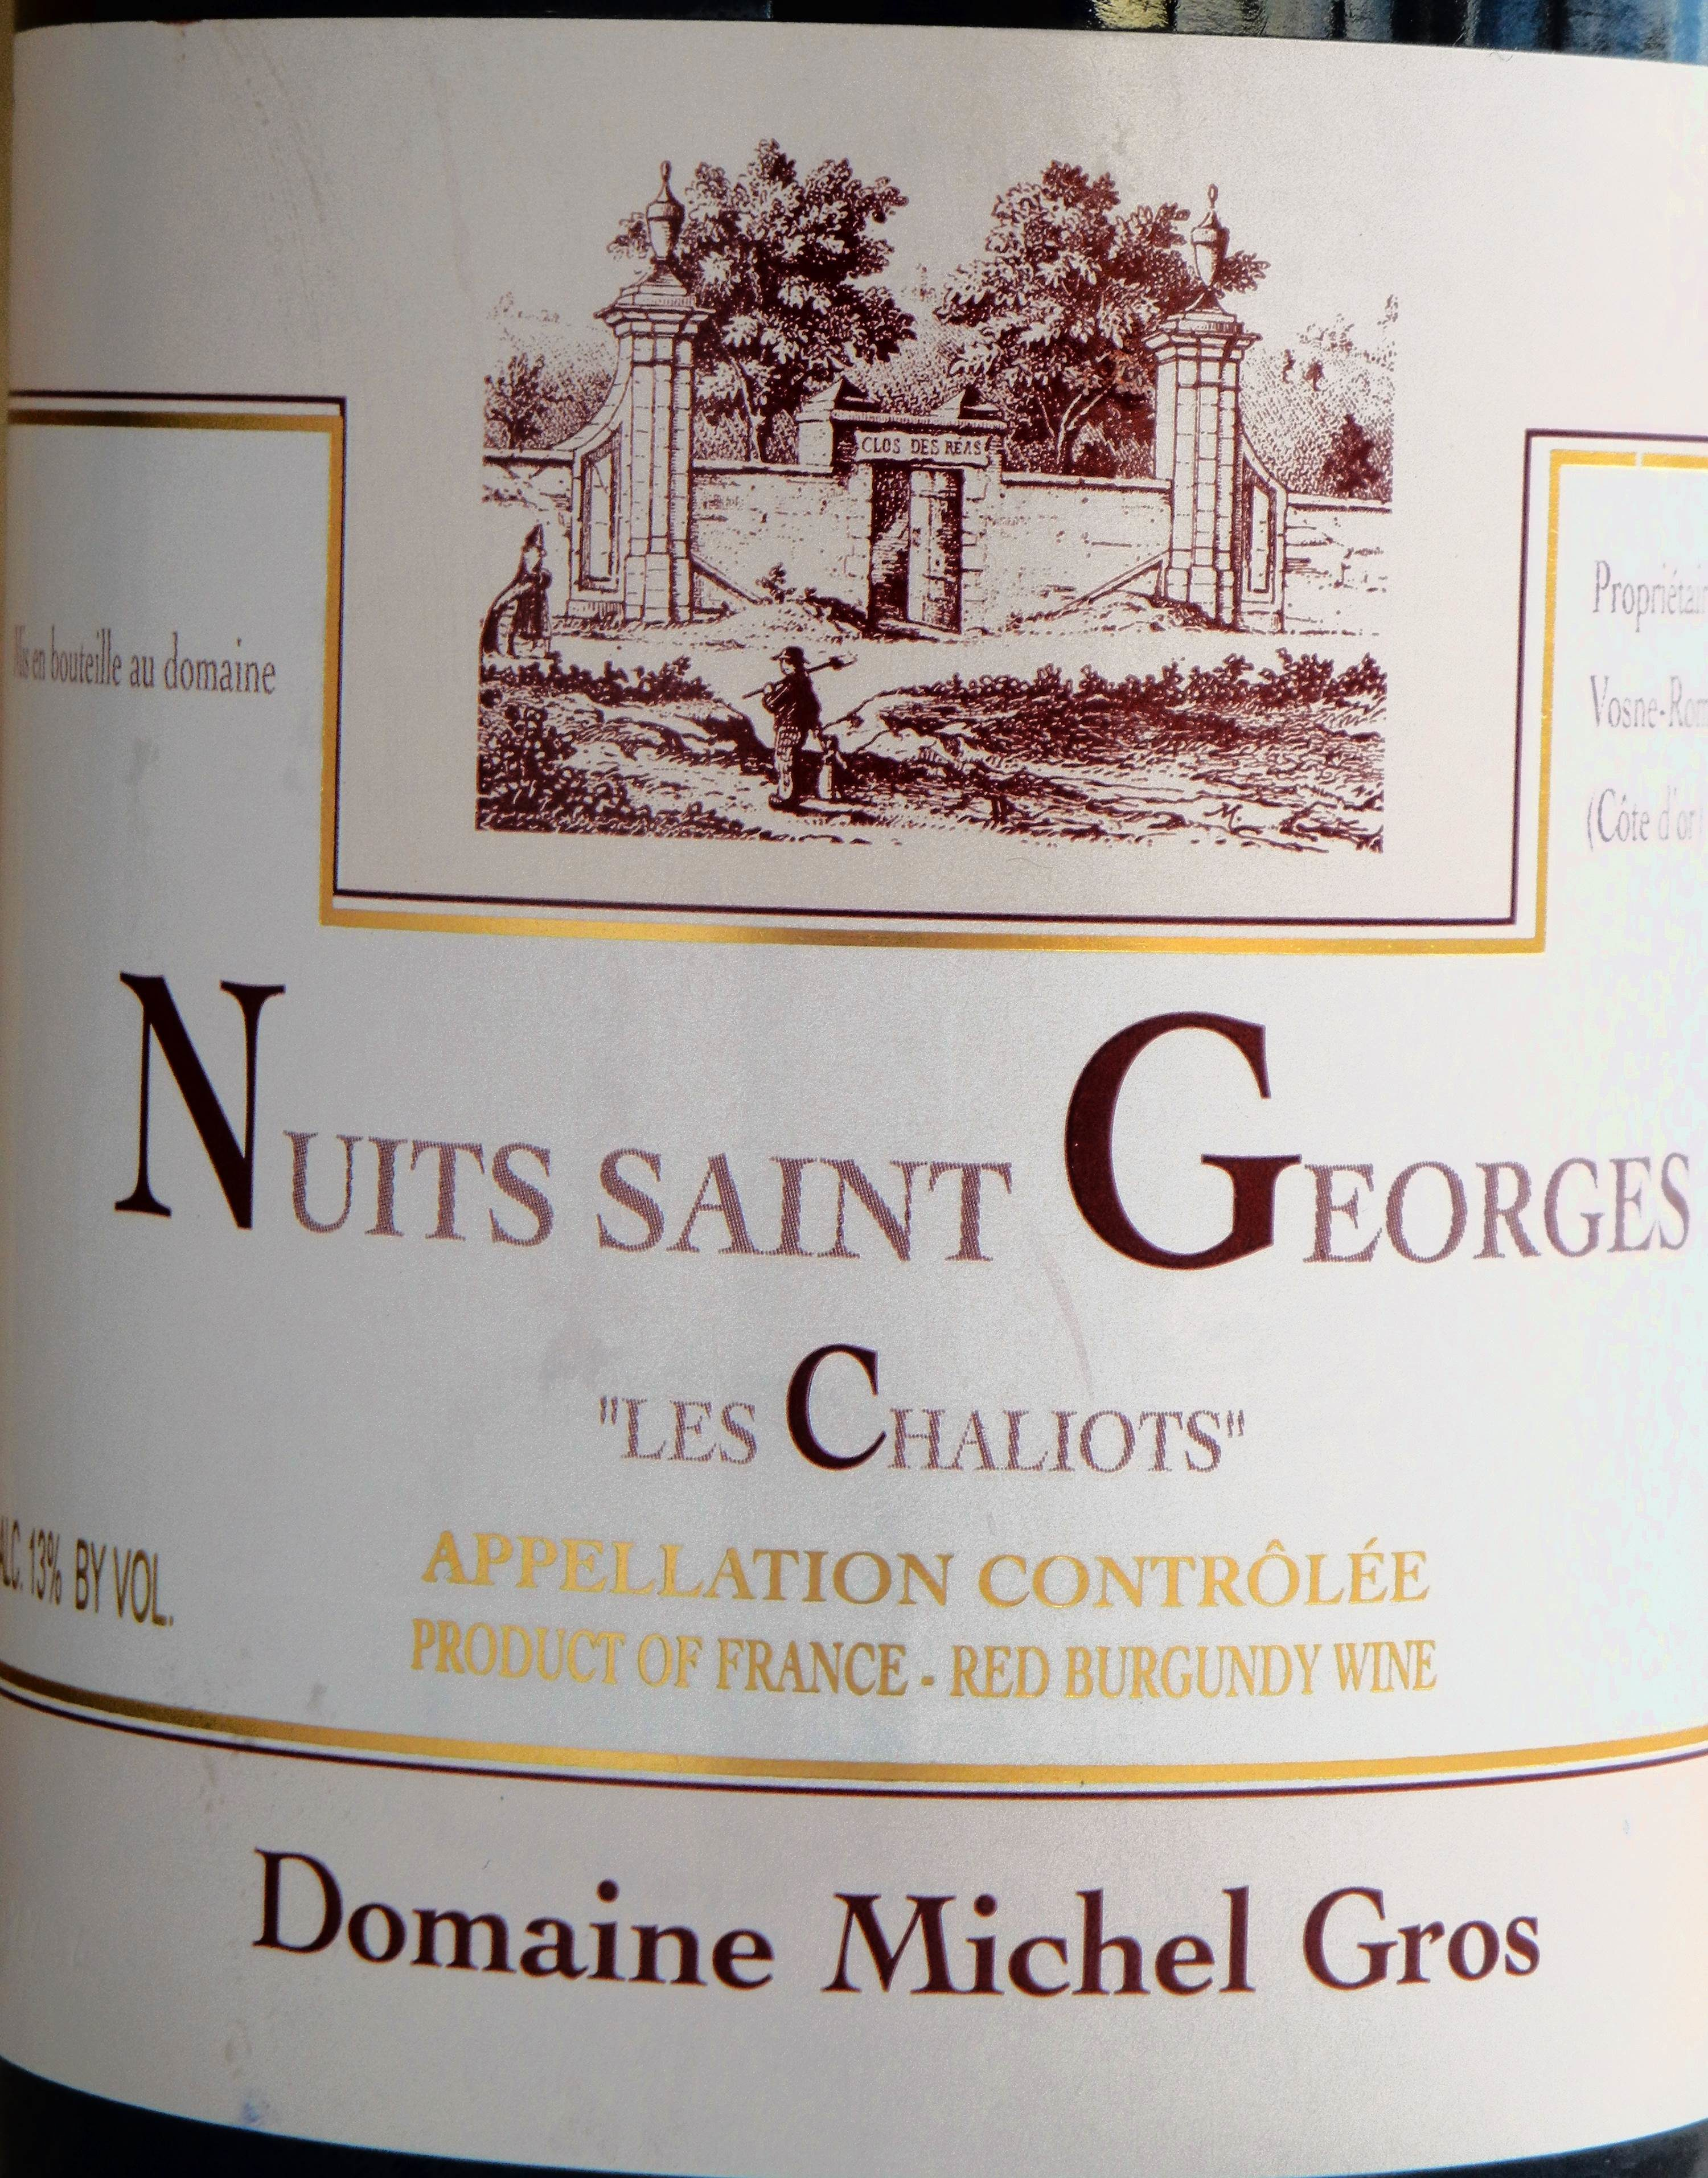 Nuits St. George Chaliots Michel Gros 2008 Label - BC Pinot Noir Tasting Review 16